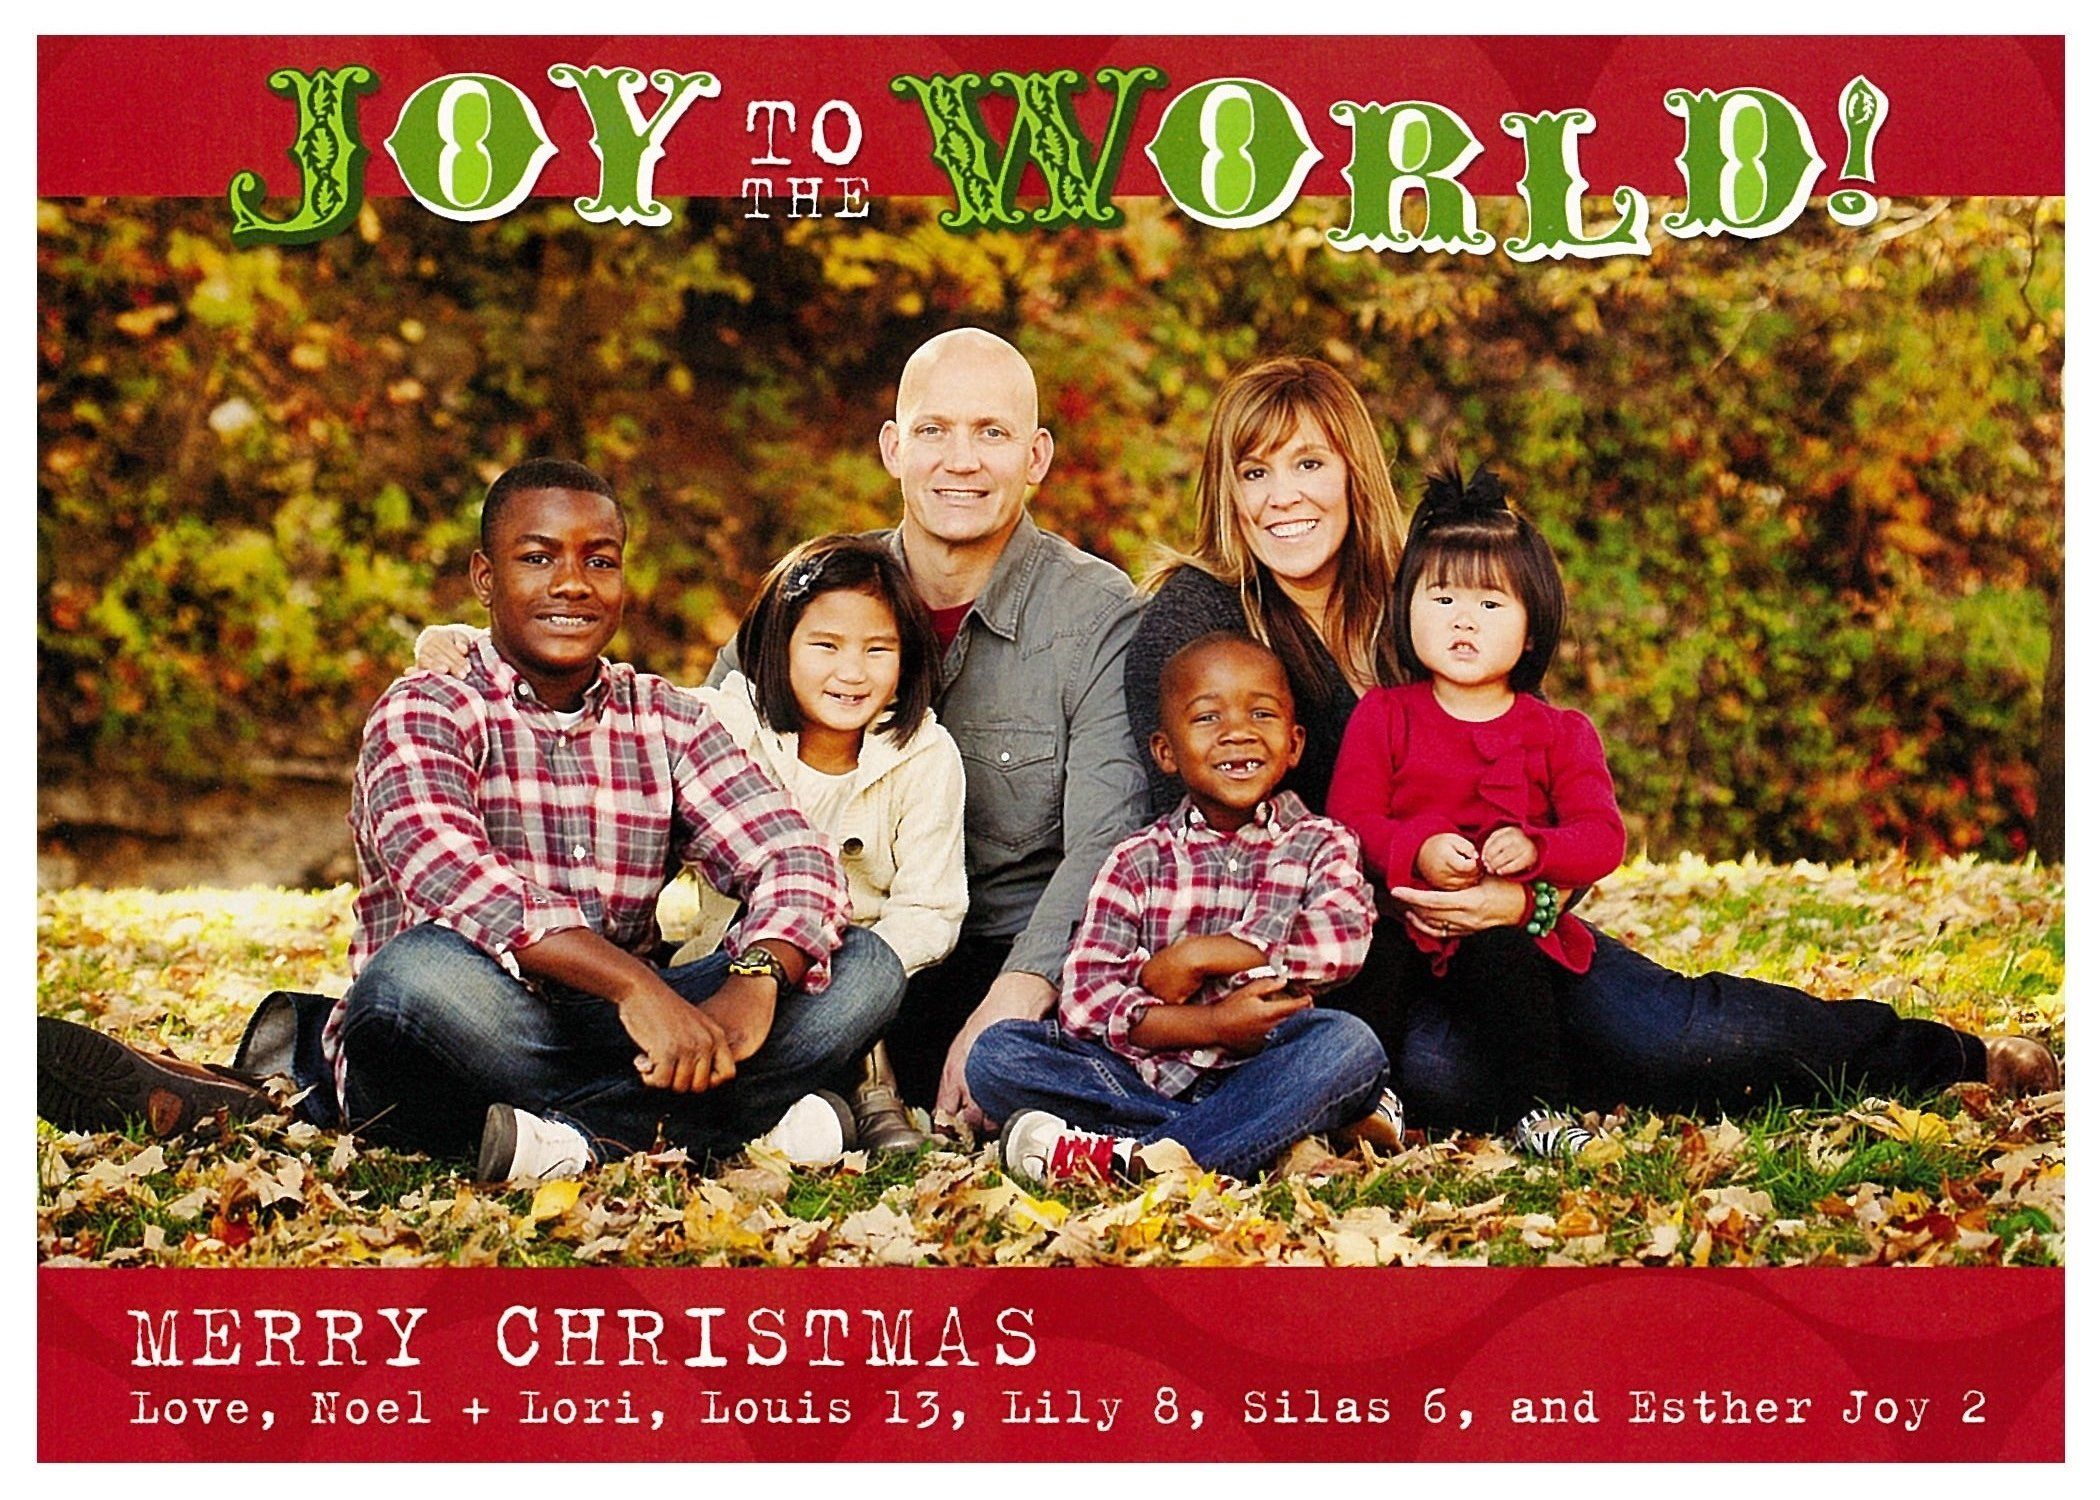 10 Most Popular Christmas Card Ideas With Kids christmas card ideas with dogs and kids 3870950 ilug cal 1 2020